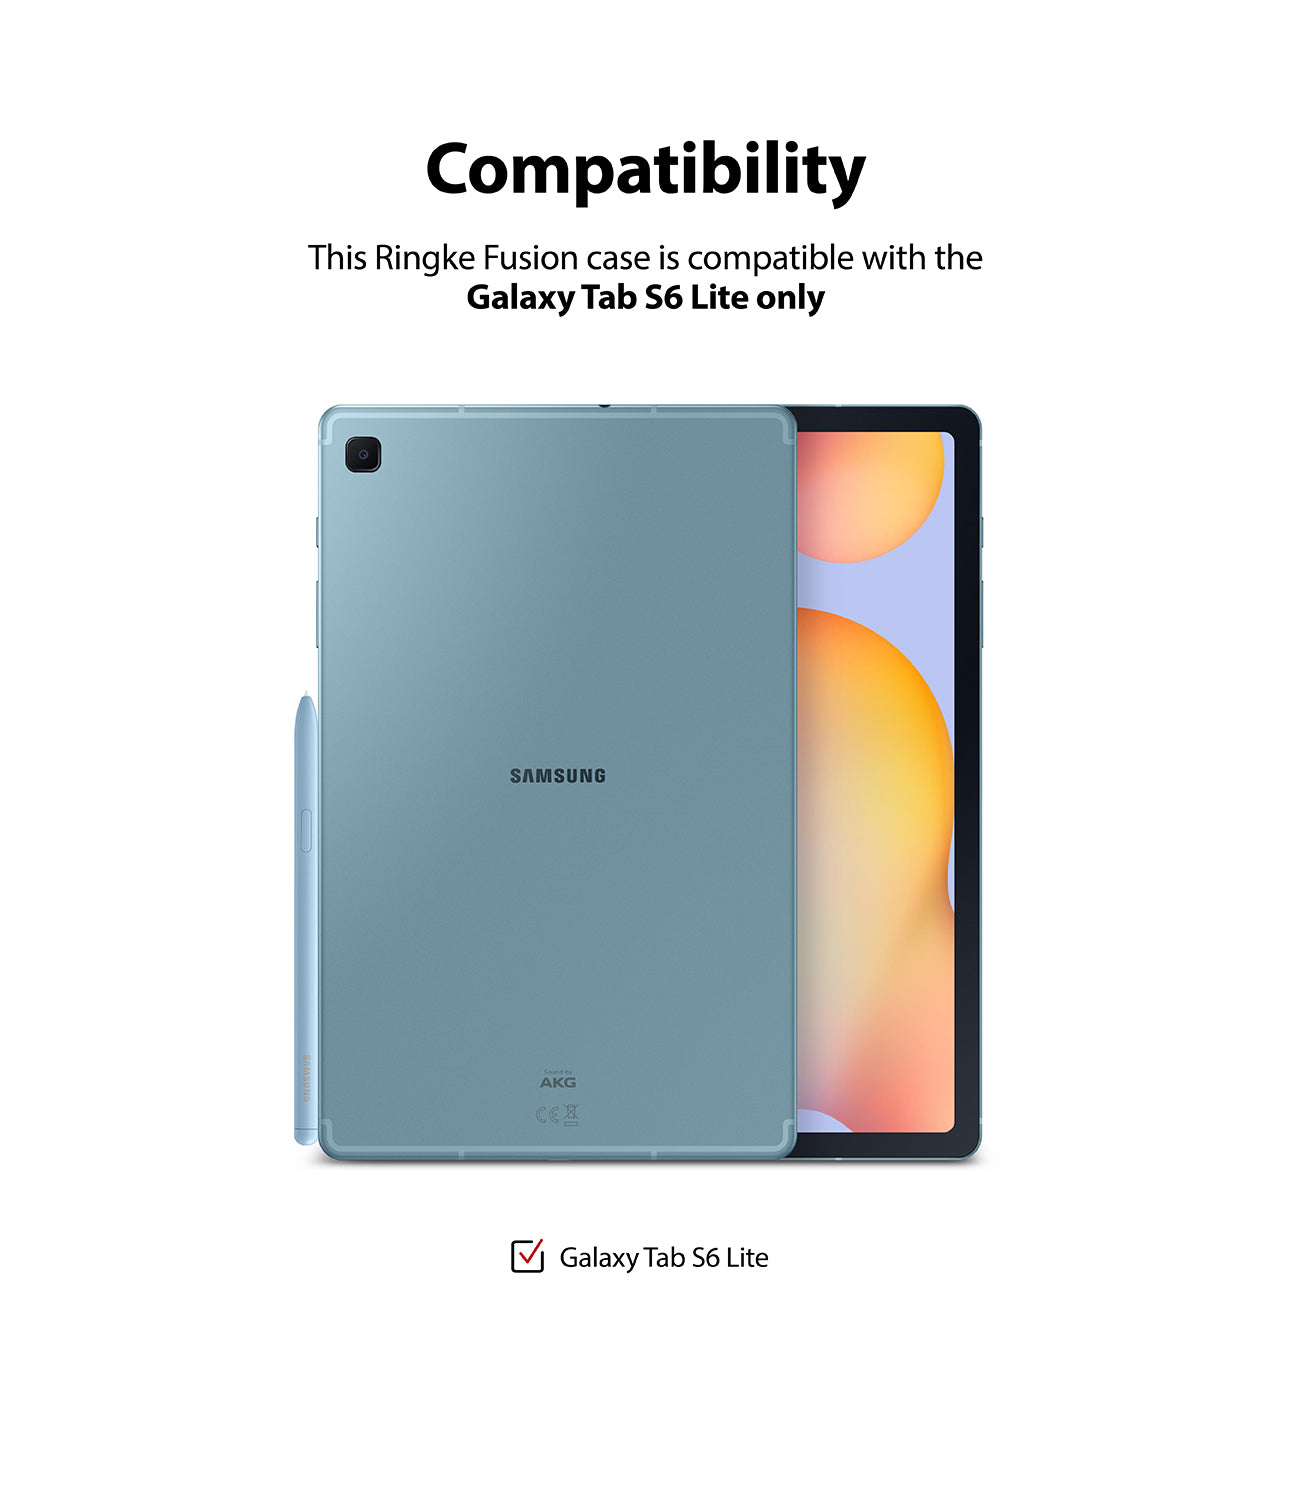 compatibility - compatible with galaxy tab s6 lite